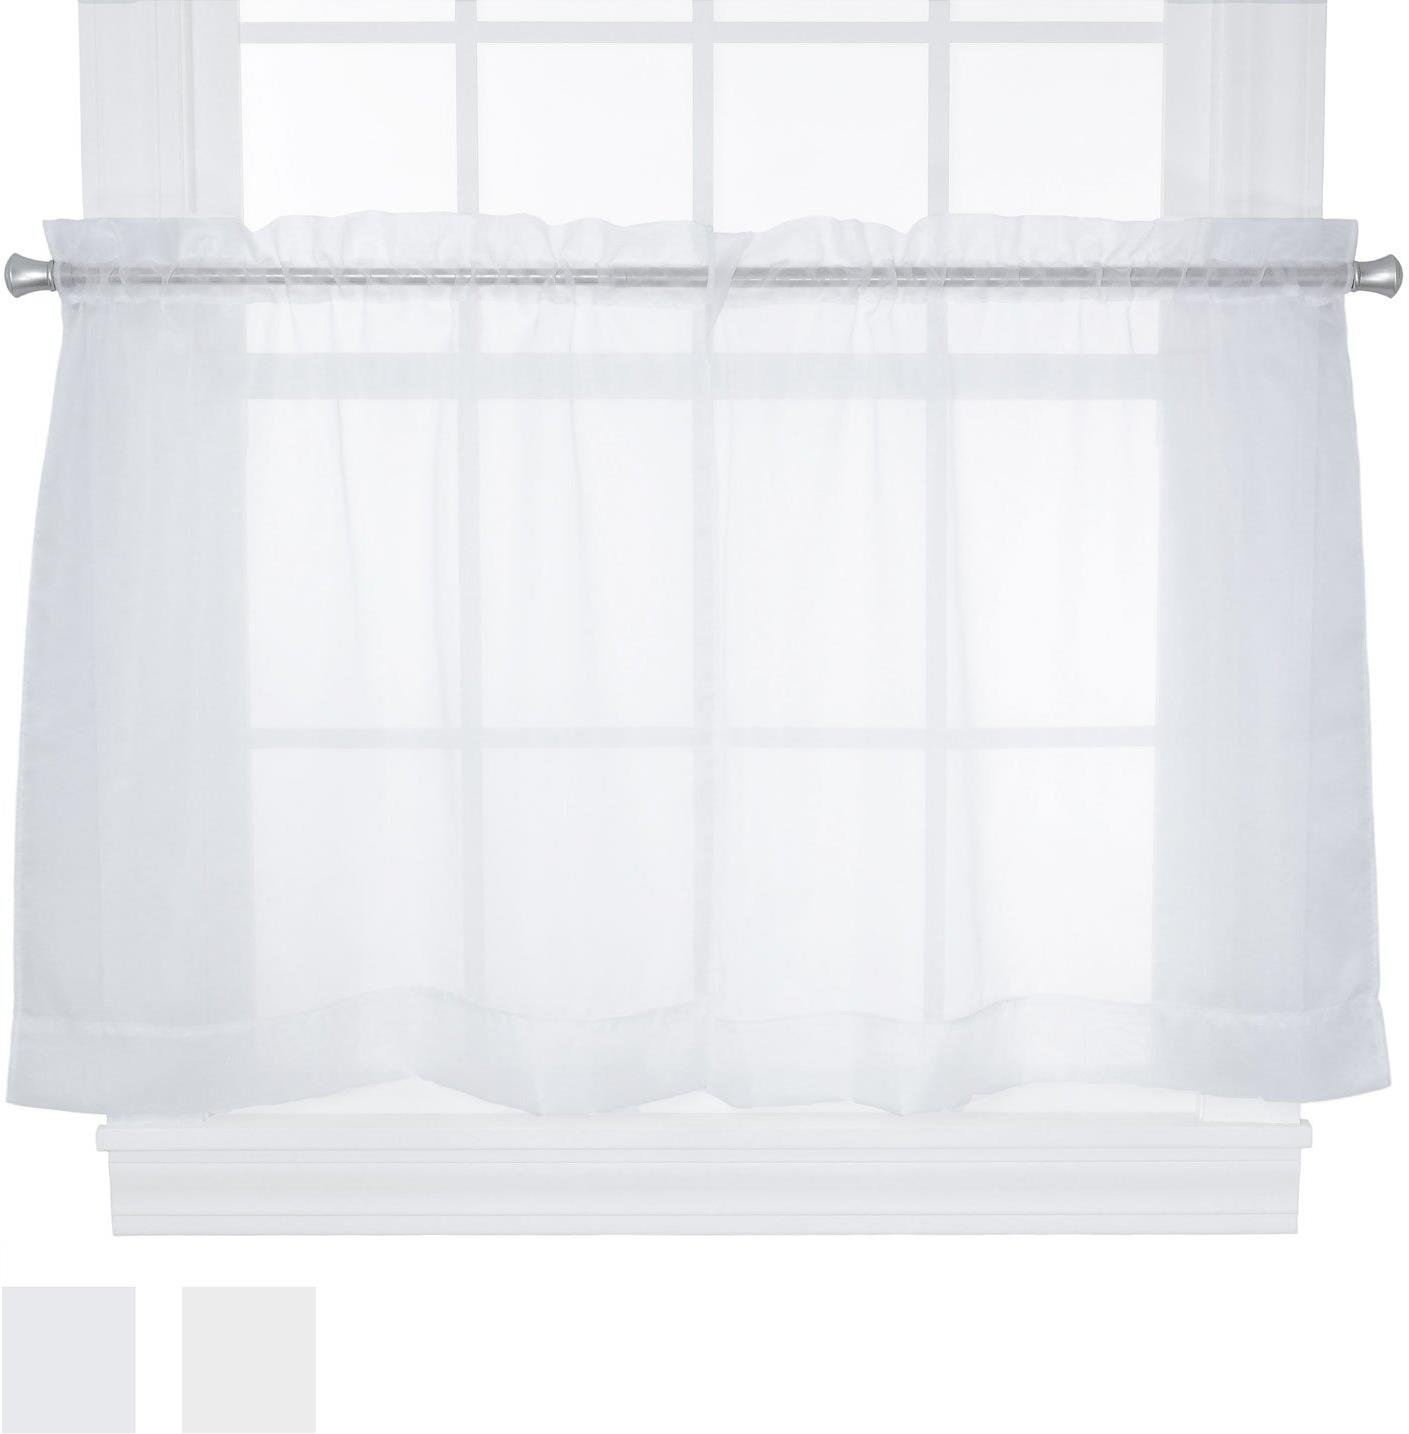 Ellis Curtain Jessica Sheer Tailored Tier Curtains, 54 by 30-Inch, White